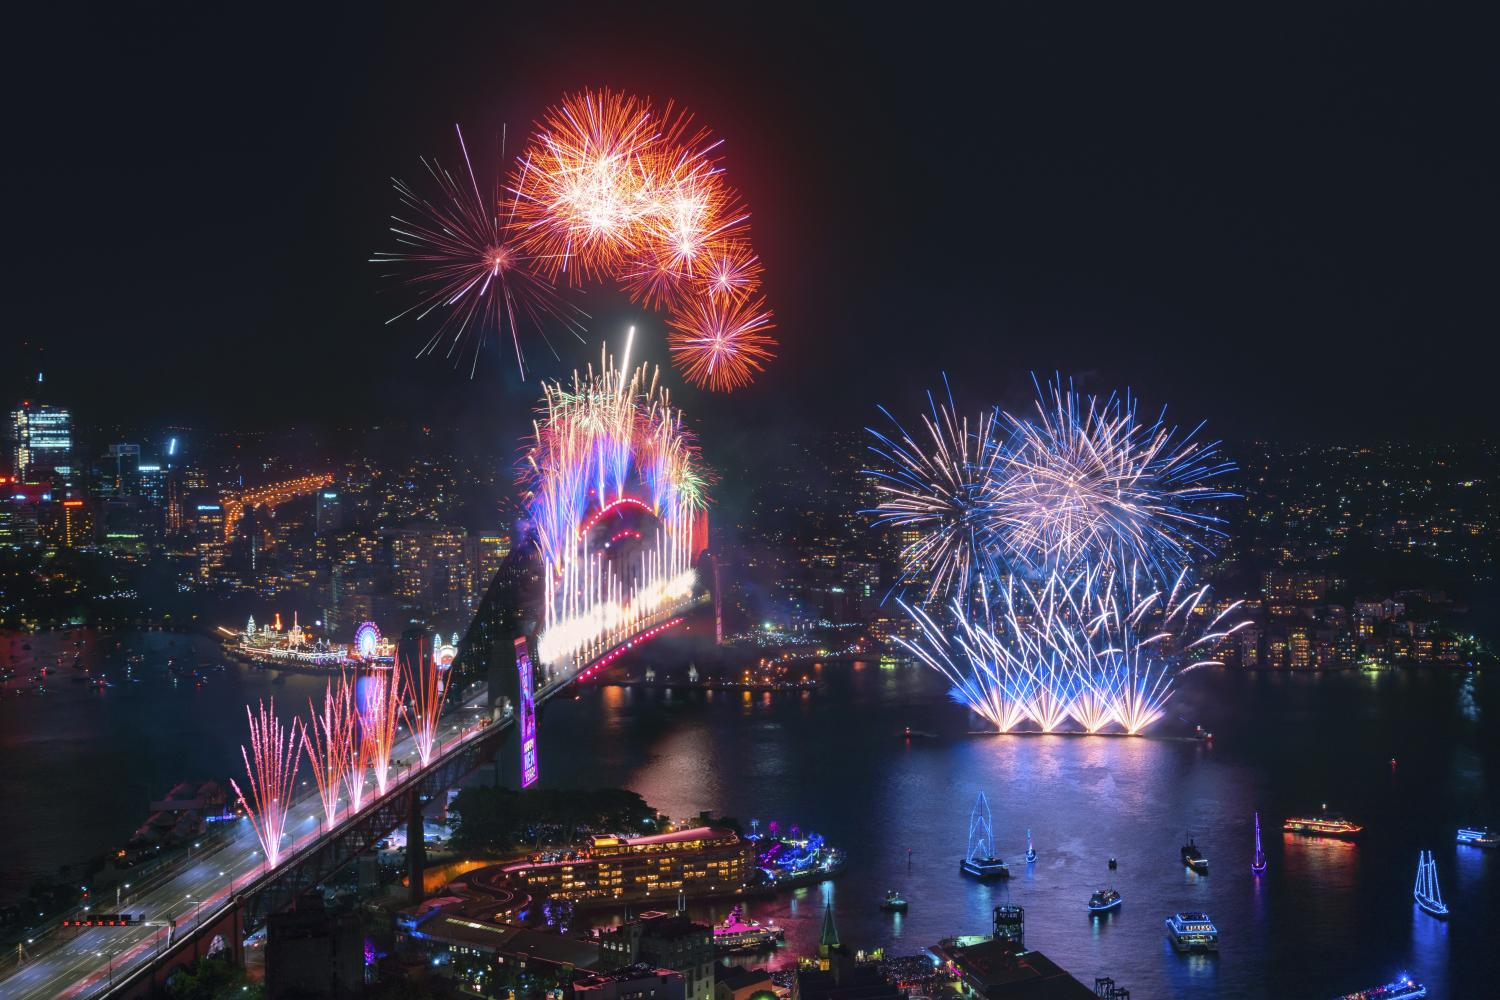 Spectacular midnight fireworks display across Sydney Harbour at to celebrate the start of the new year 2020